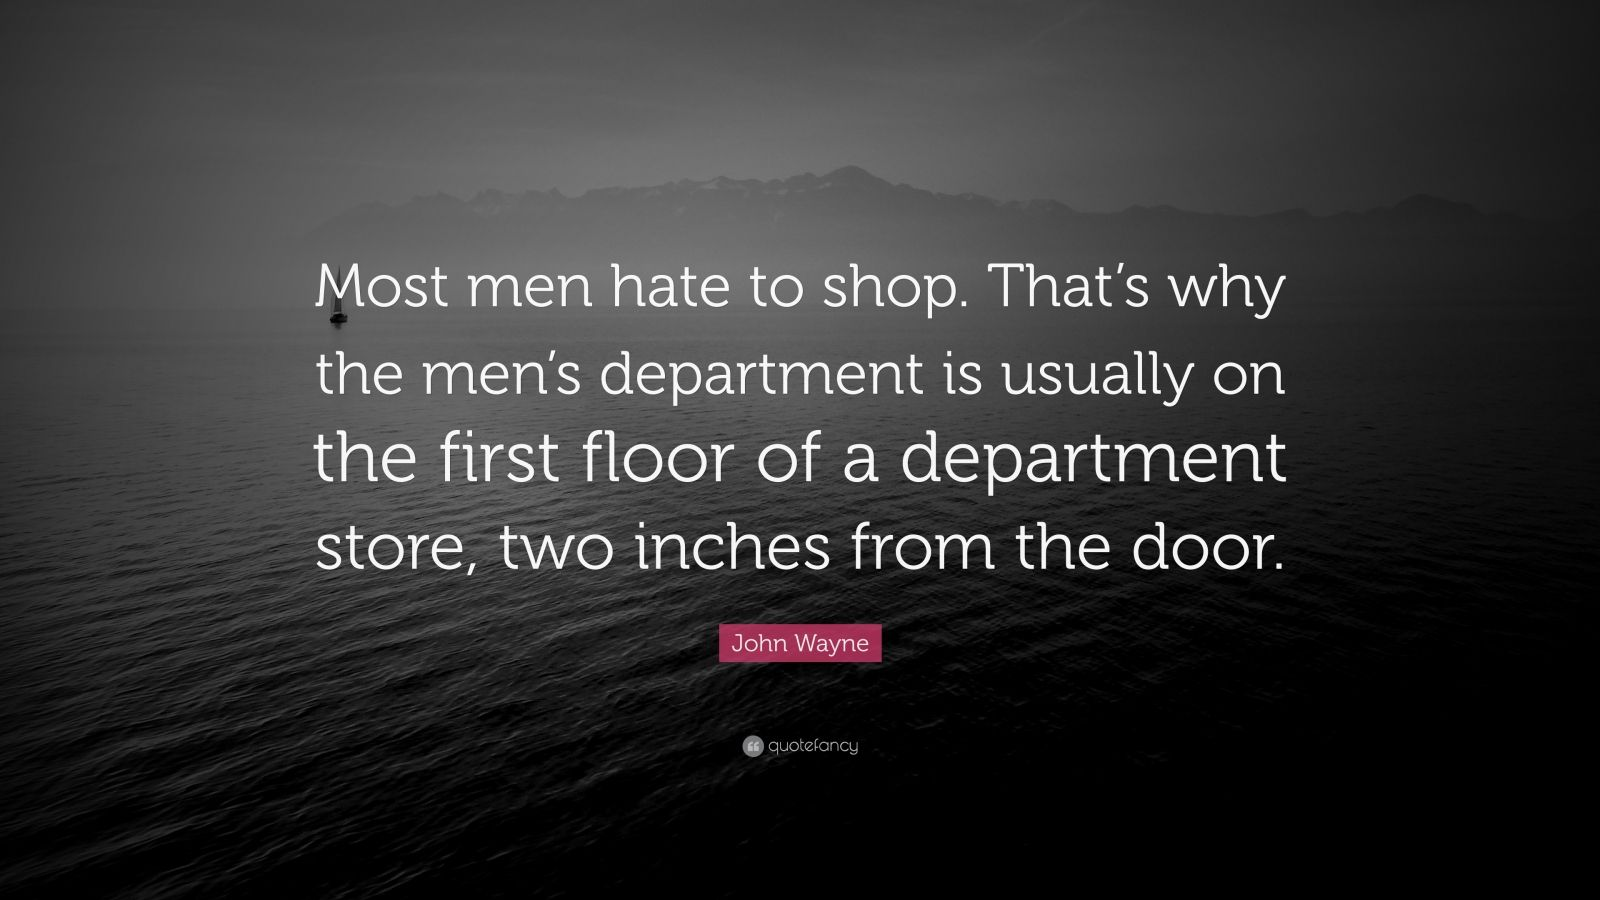 """John Wayne Quote: """"Most men hate to shop. That's why the men's department is usually on the first floor of a department store, two inches from the door."""""""